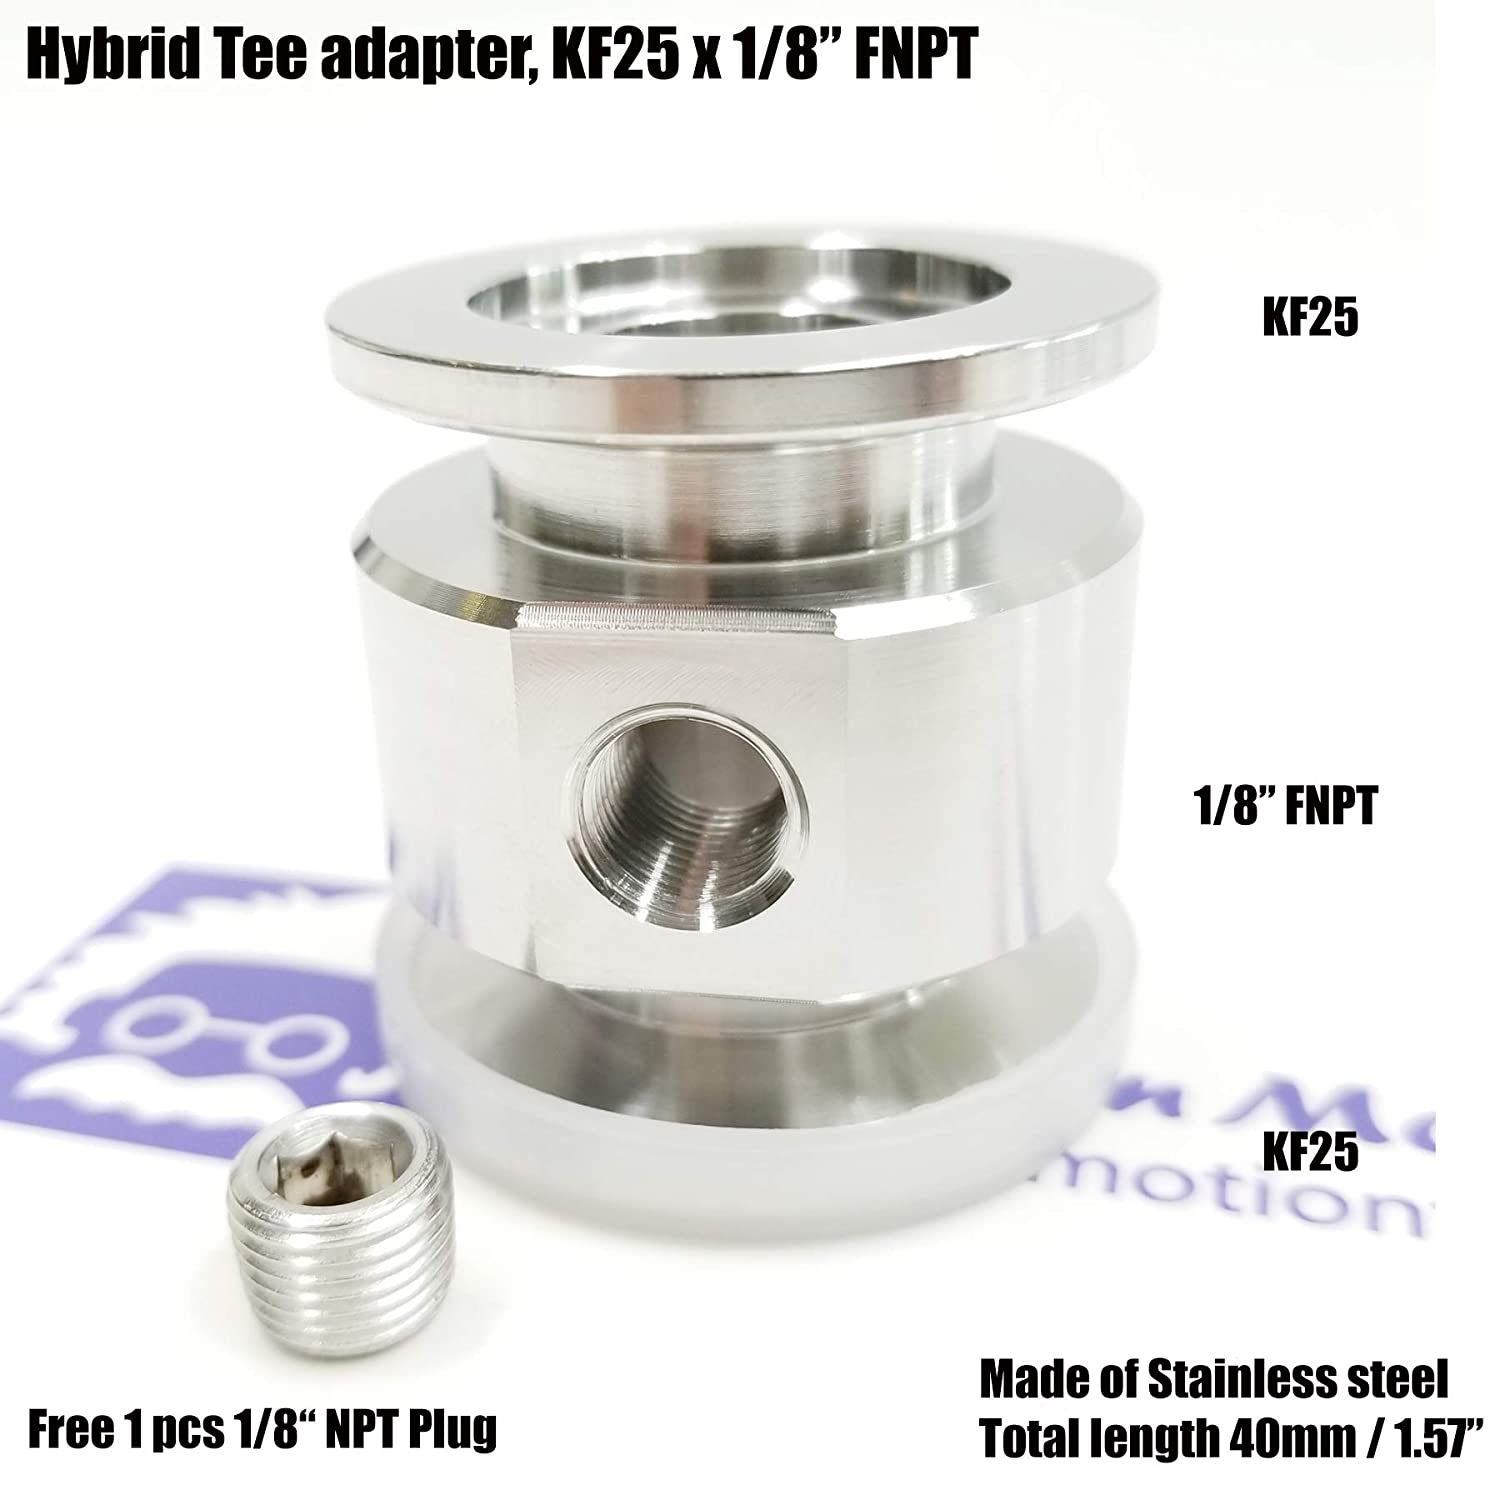 """Vacuum adaptive Tee both ends KF25 Flange and middle 1/8"""" FNPT port, End to end length 40 mm Bmotiontech"""